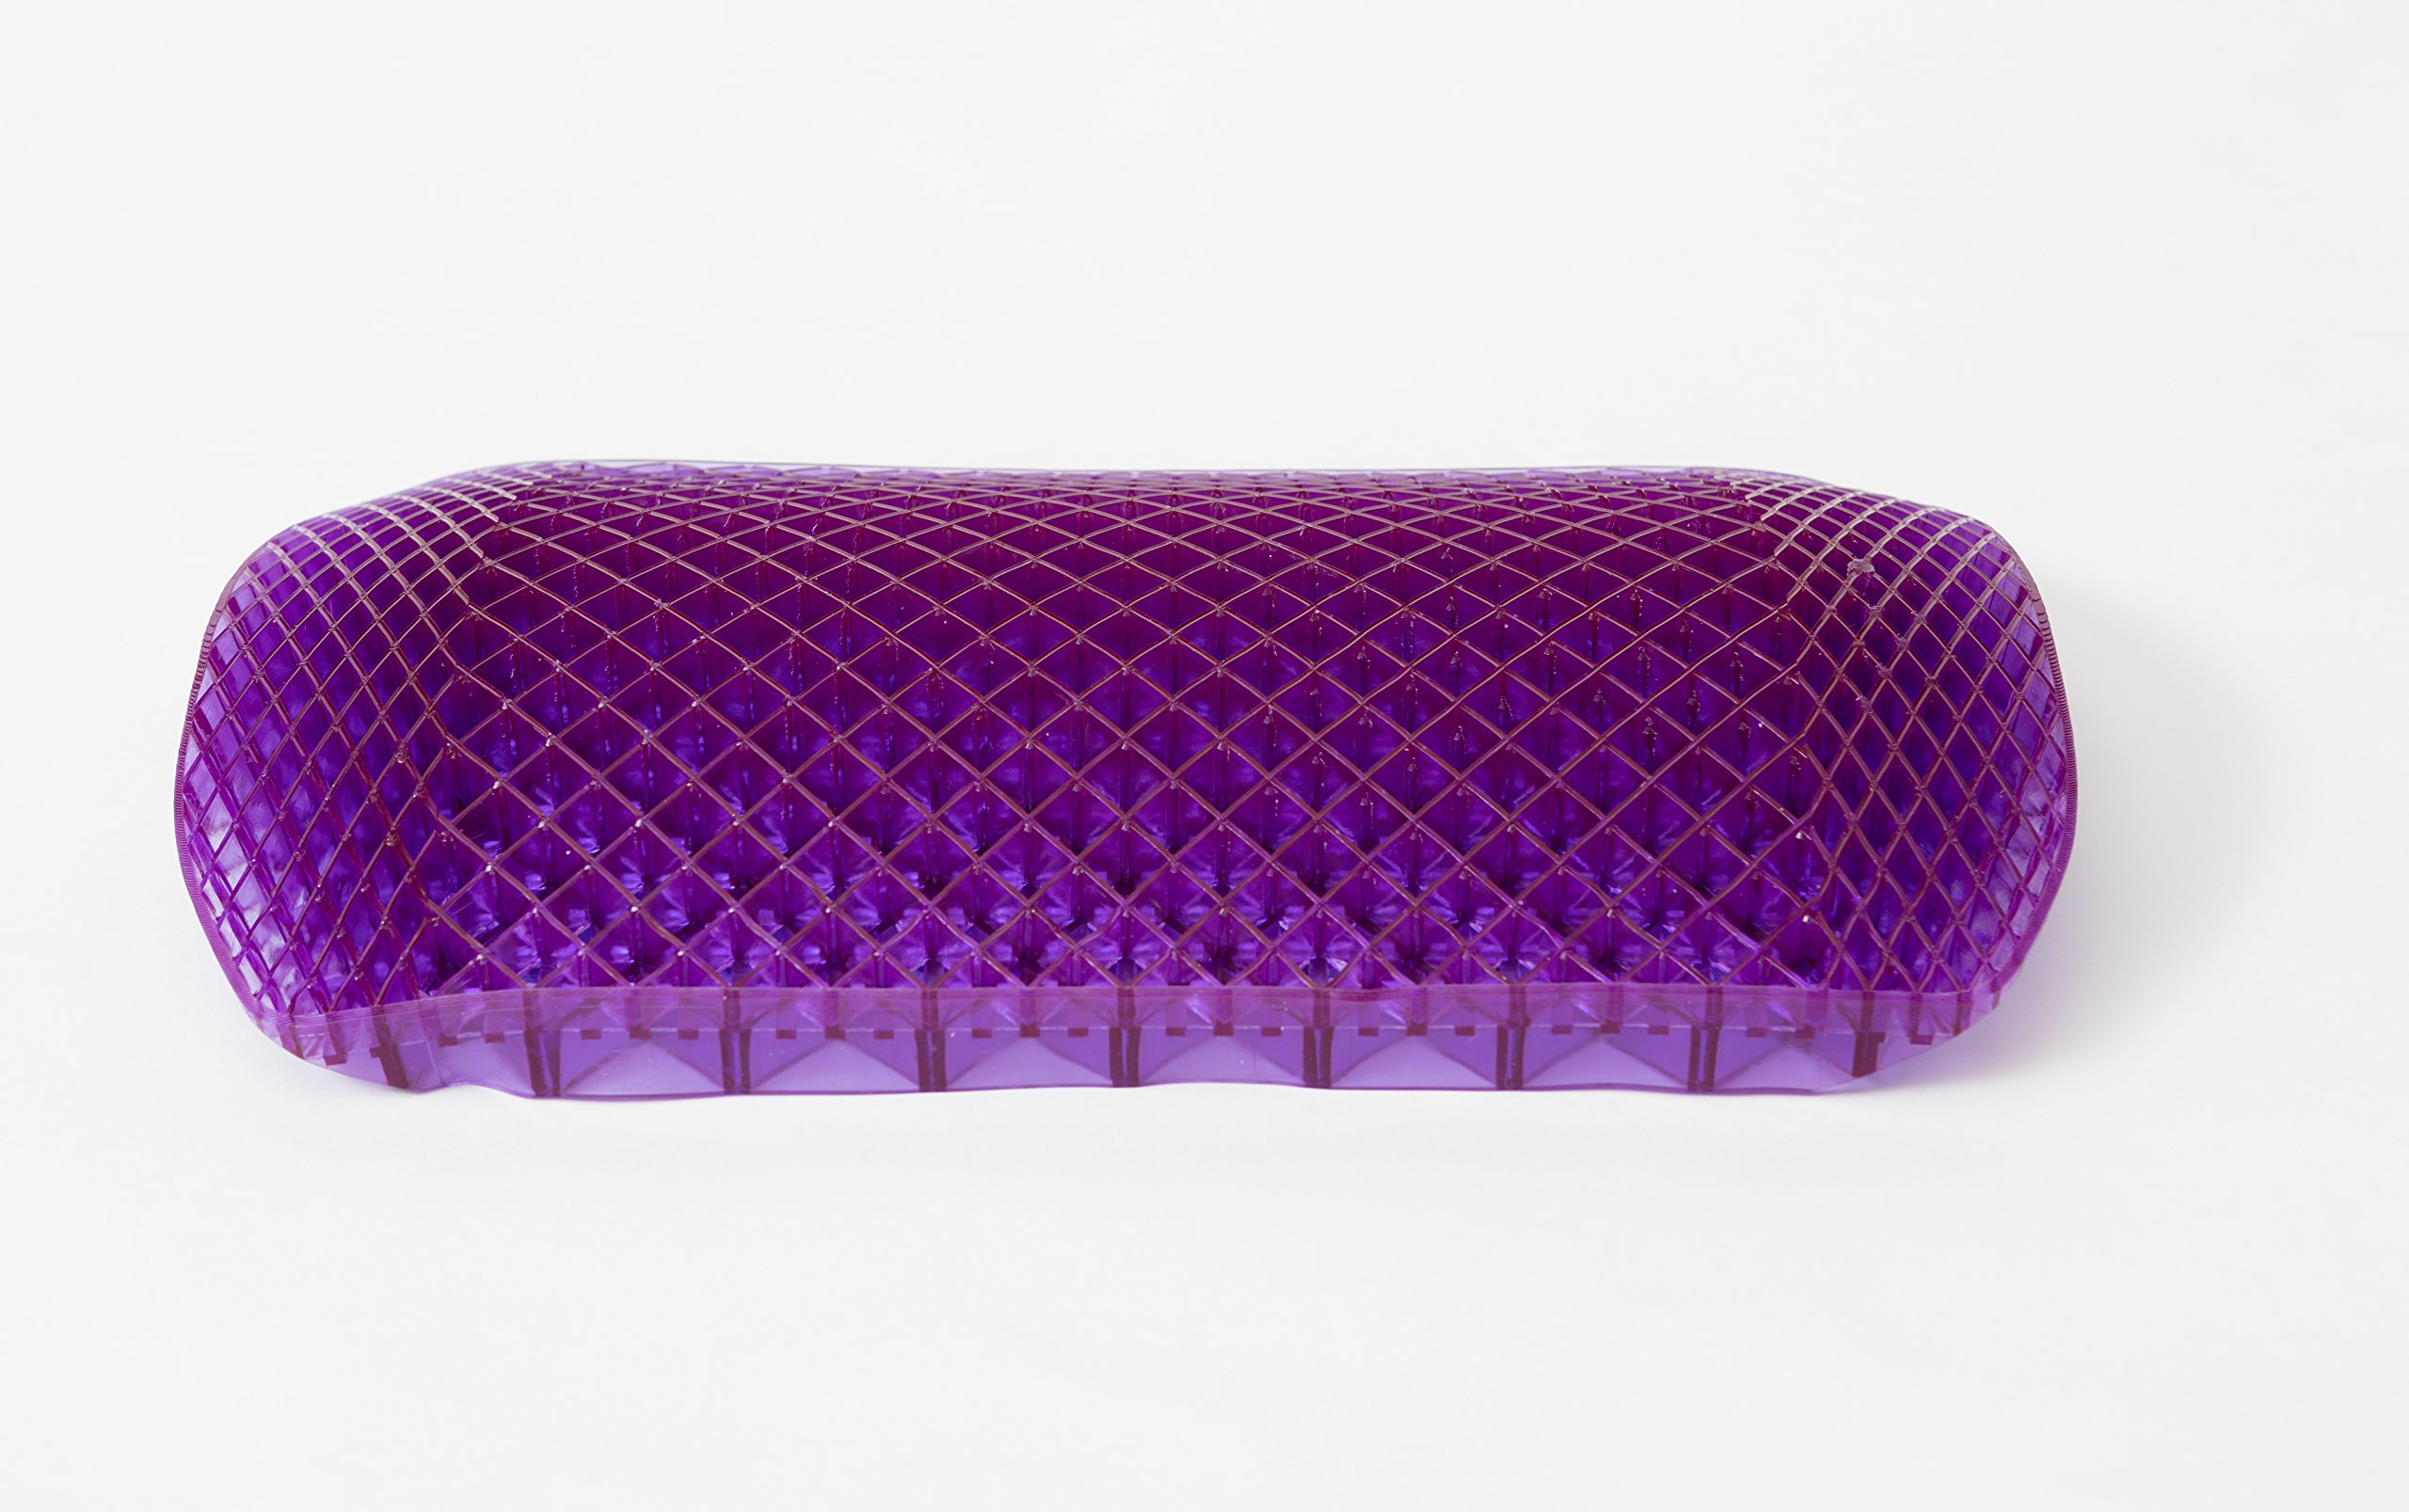 Purple Seat Cushion Back   Seat Cushion For The Car Or Office Chair   Can  Help